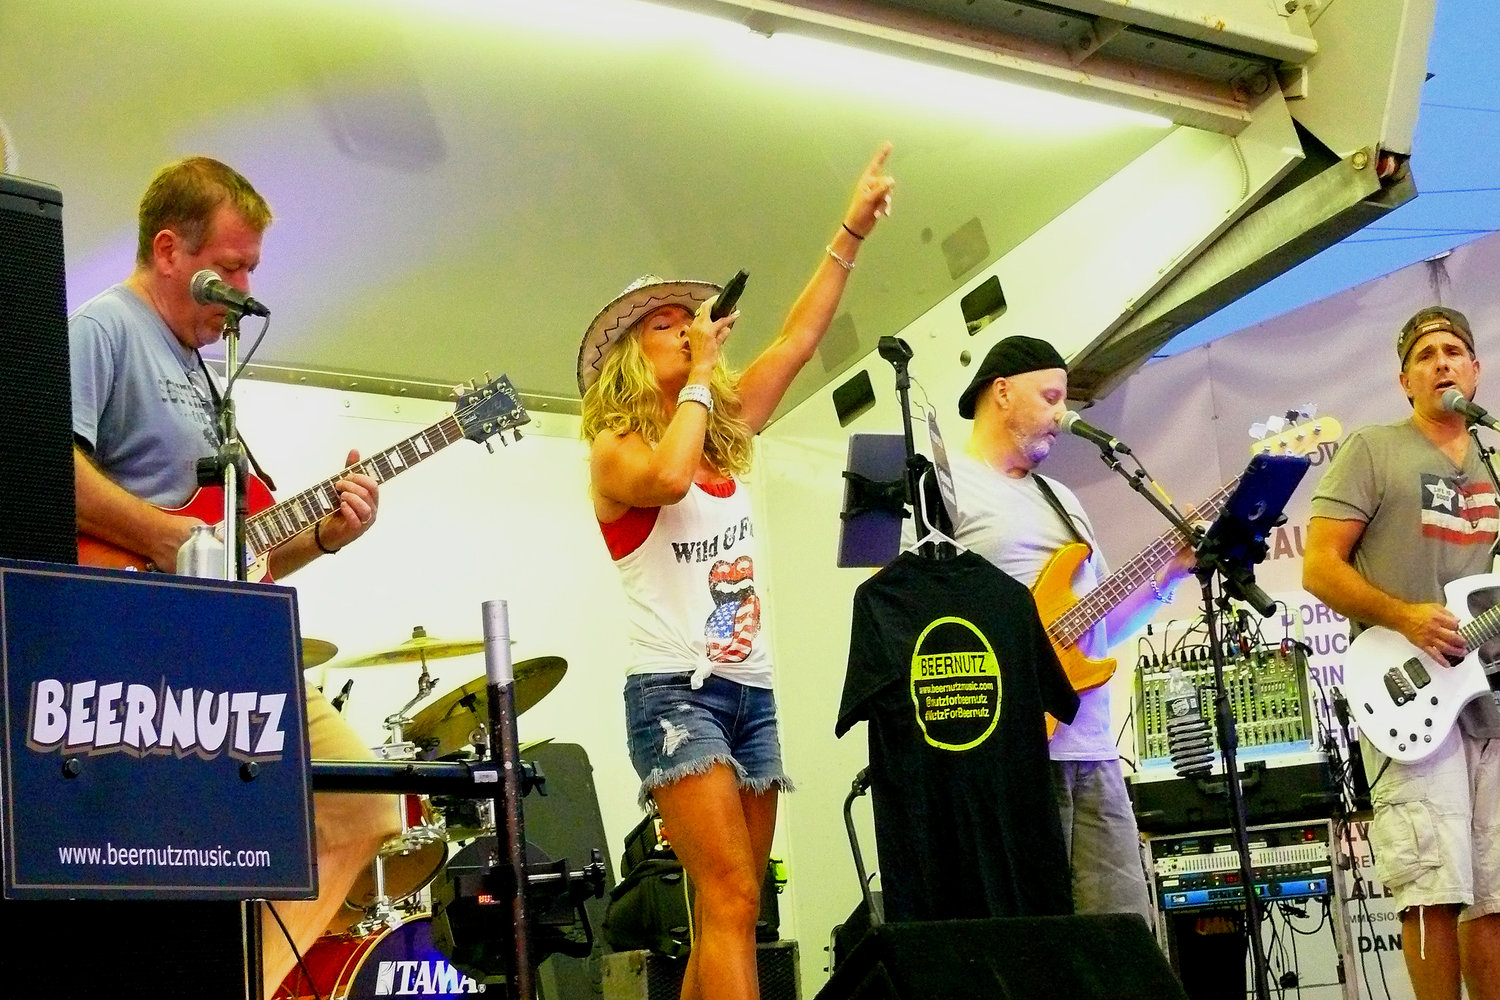 Classic rock cover band Beernutz hit the stage at Masone Beach for the final concert of the village's summer series on Aug. 31.